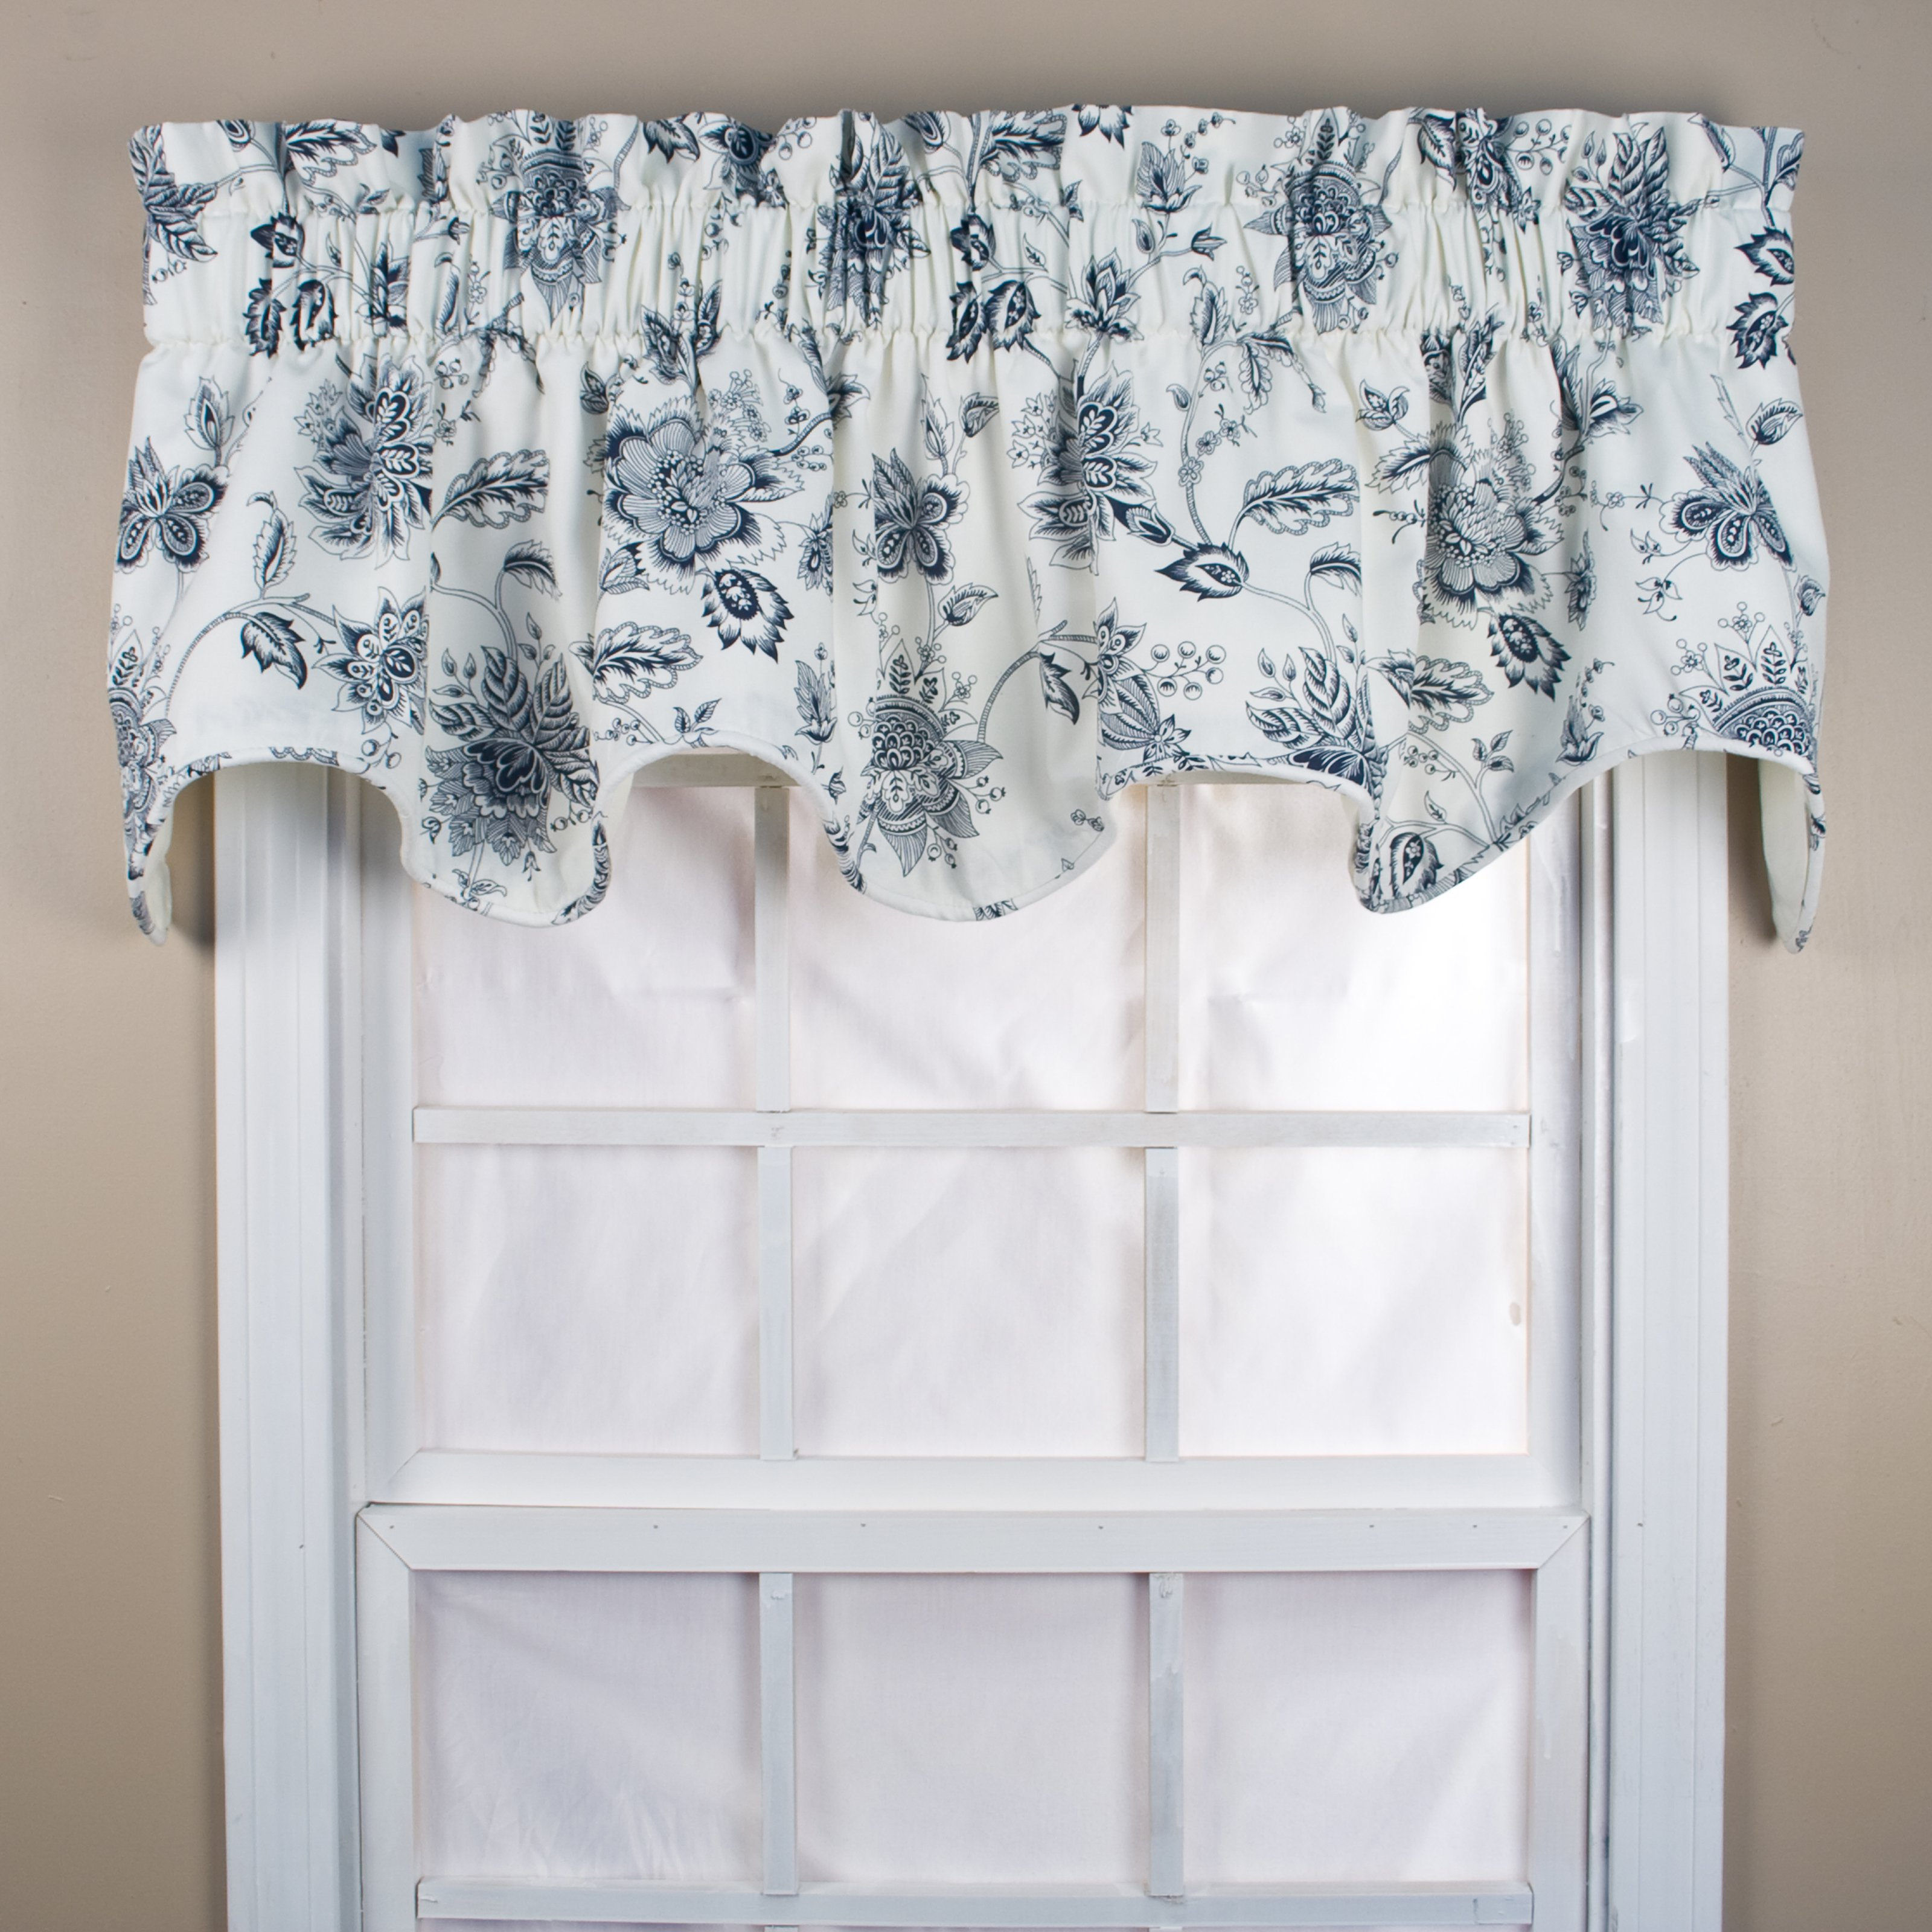 rod better lined pocket ip valances x and com homes bffd trellis gardens valance walmart